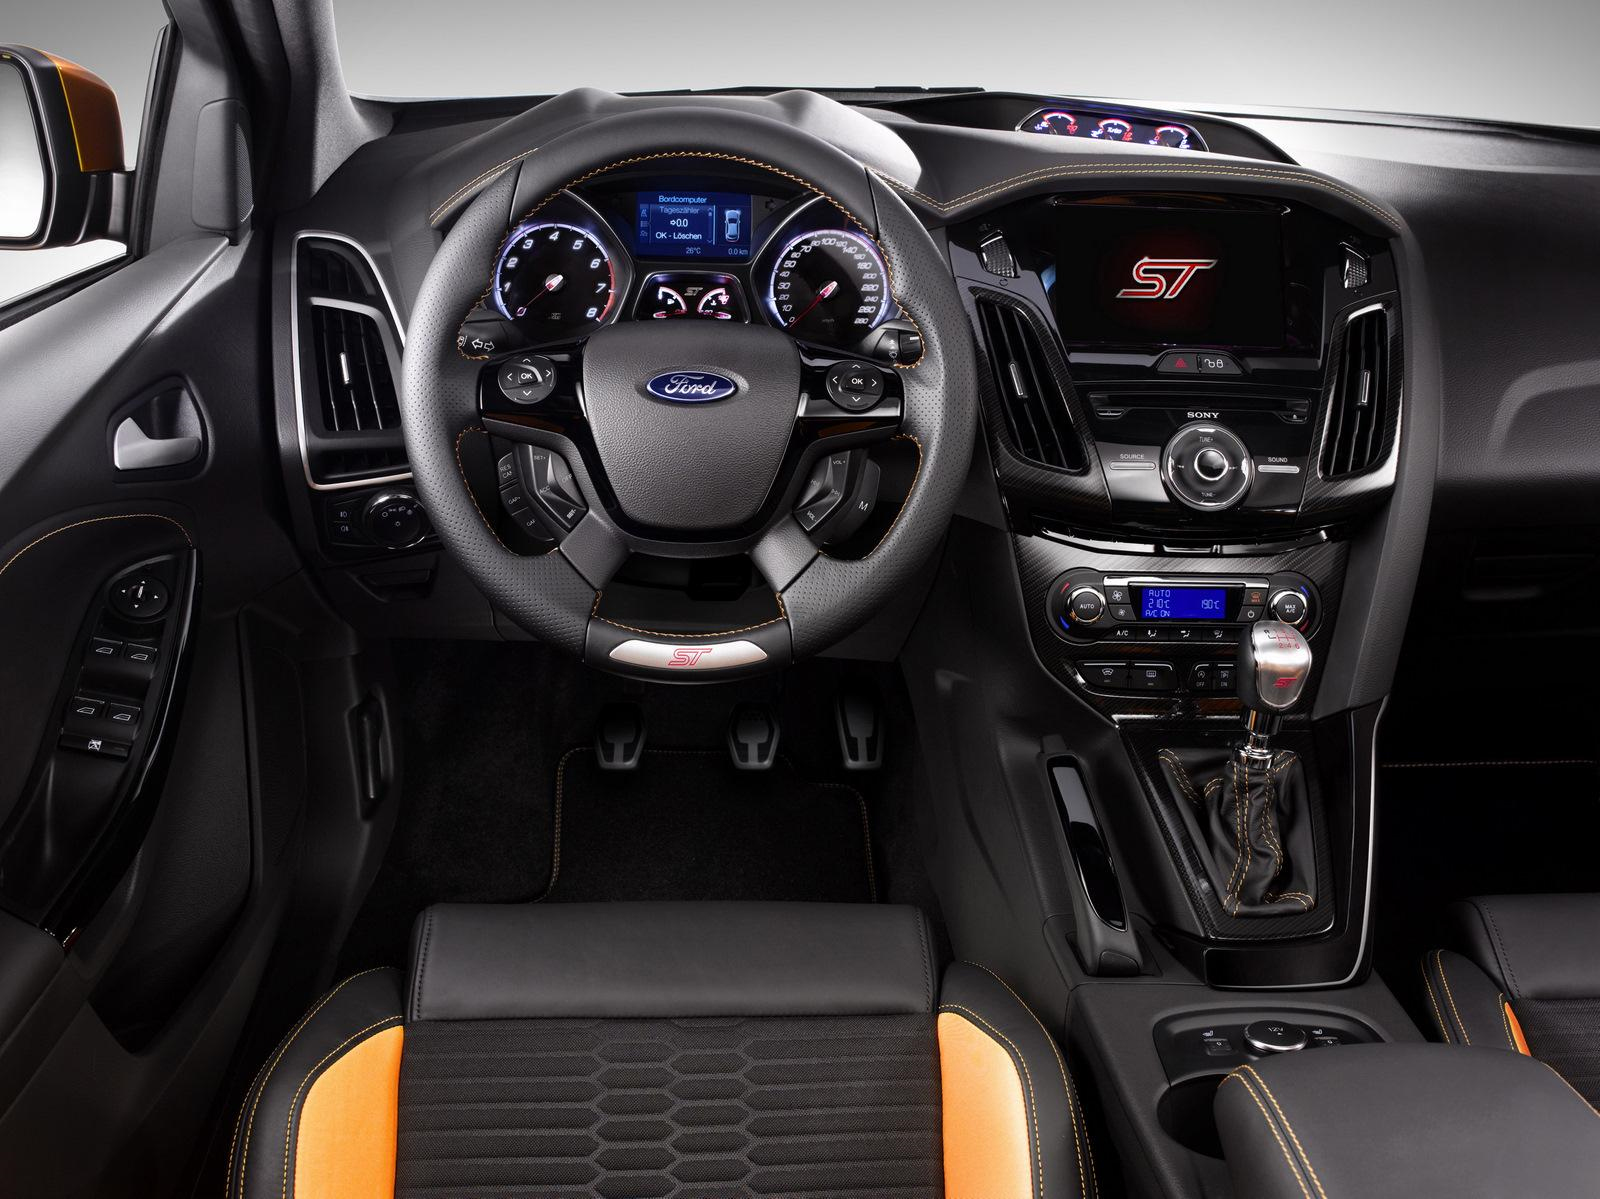 2012 Ford Focus Dashboard Removal